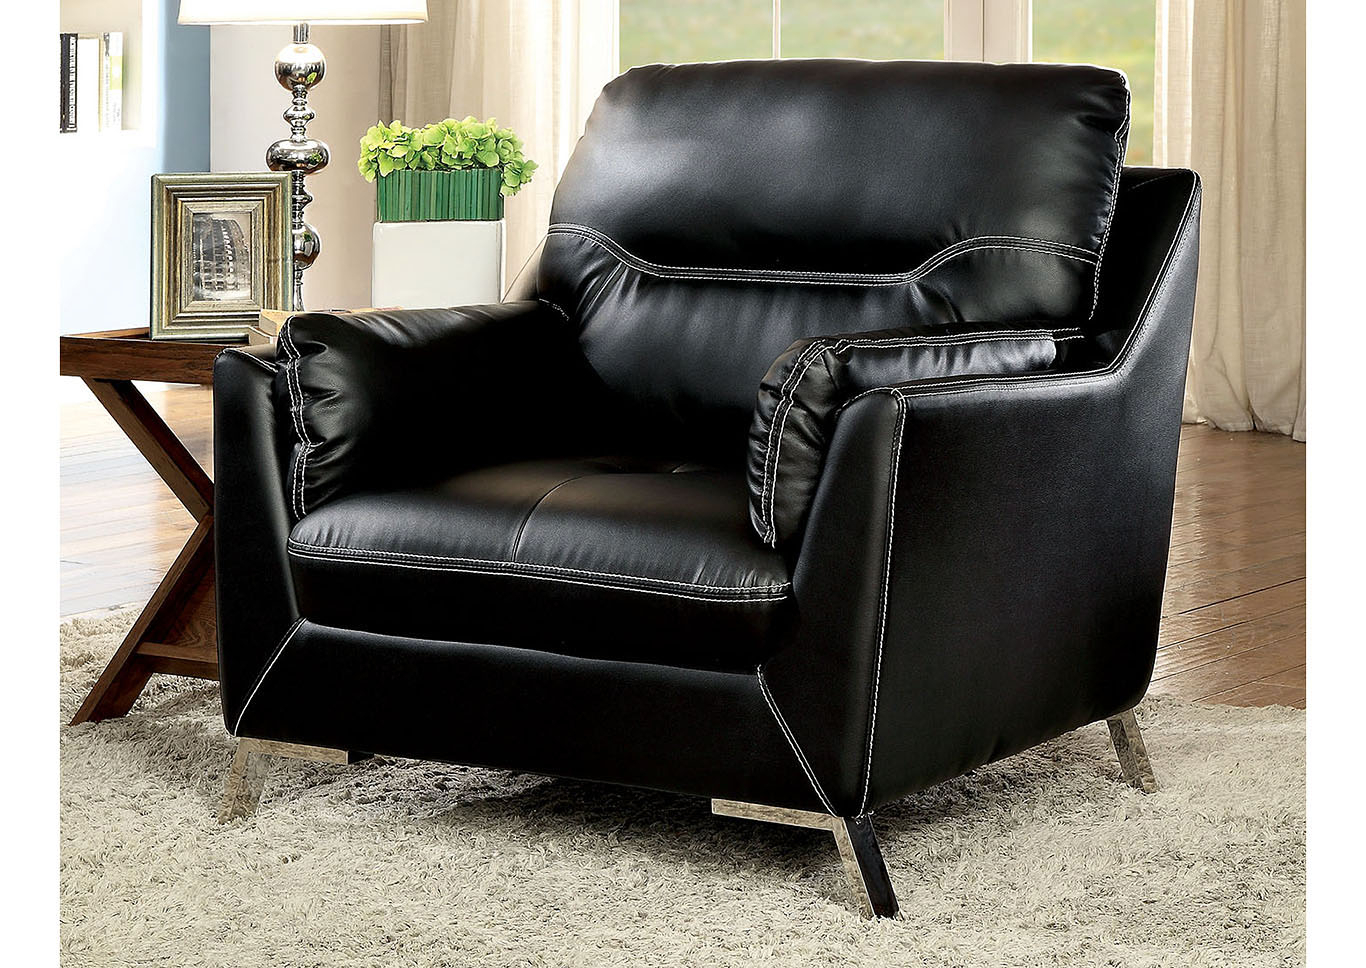 Lion Furniture Center Nichola Black Chair Regarding Nichol Swivel Accent Chairs (Image 10 of 25)